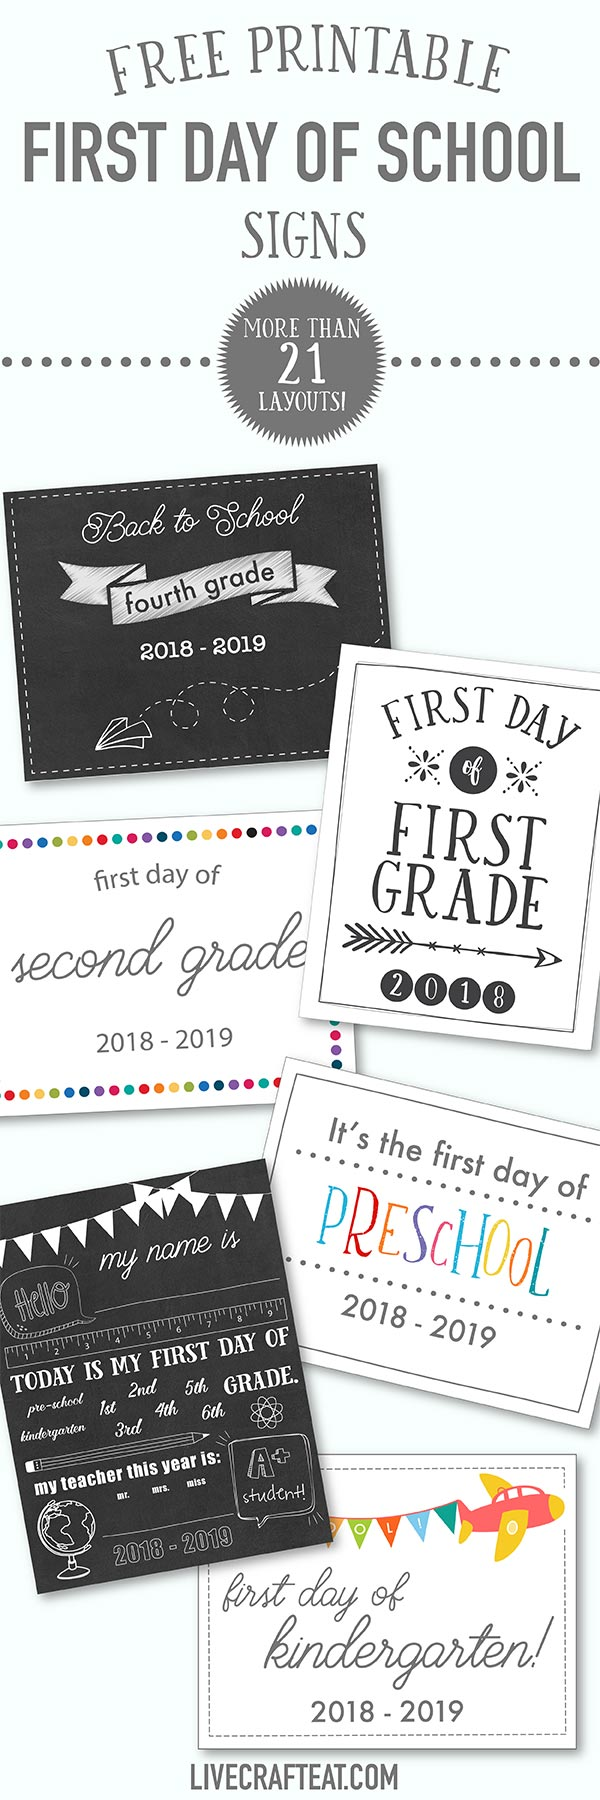 hight resolution of First Day Of School Printables - FREE - 21 Layouts of Pre-K - 6th   Live  Craft Eat